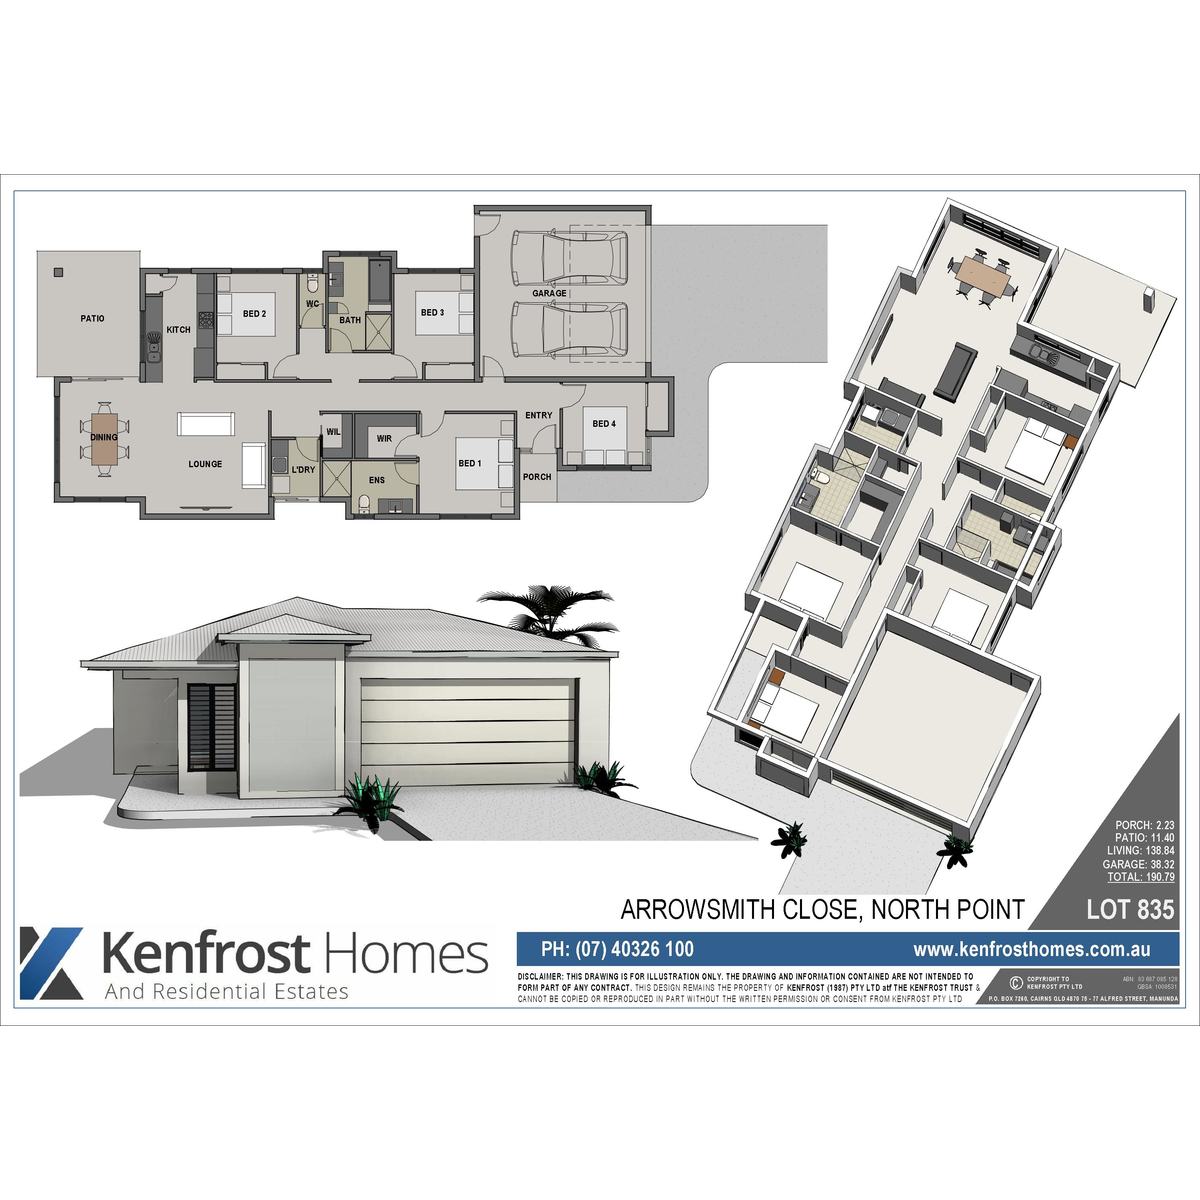 #205182 Lot 835 Arrowsmith Close Smithfield QLD 4878 Cairns Key  Highly Rated 9379 Air Conditioning Units Cairns wallpapers with 1200x1200 px on helpvideos.info - Air Conditioners, Air Coolers and more